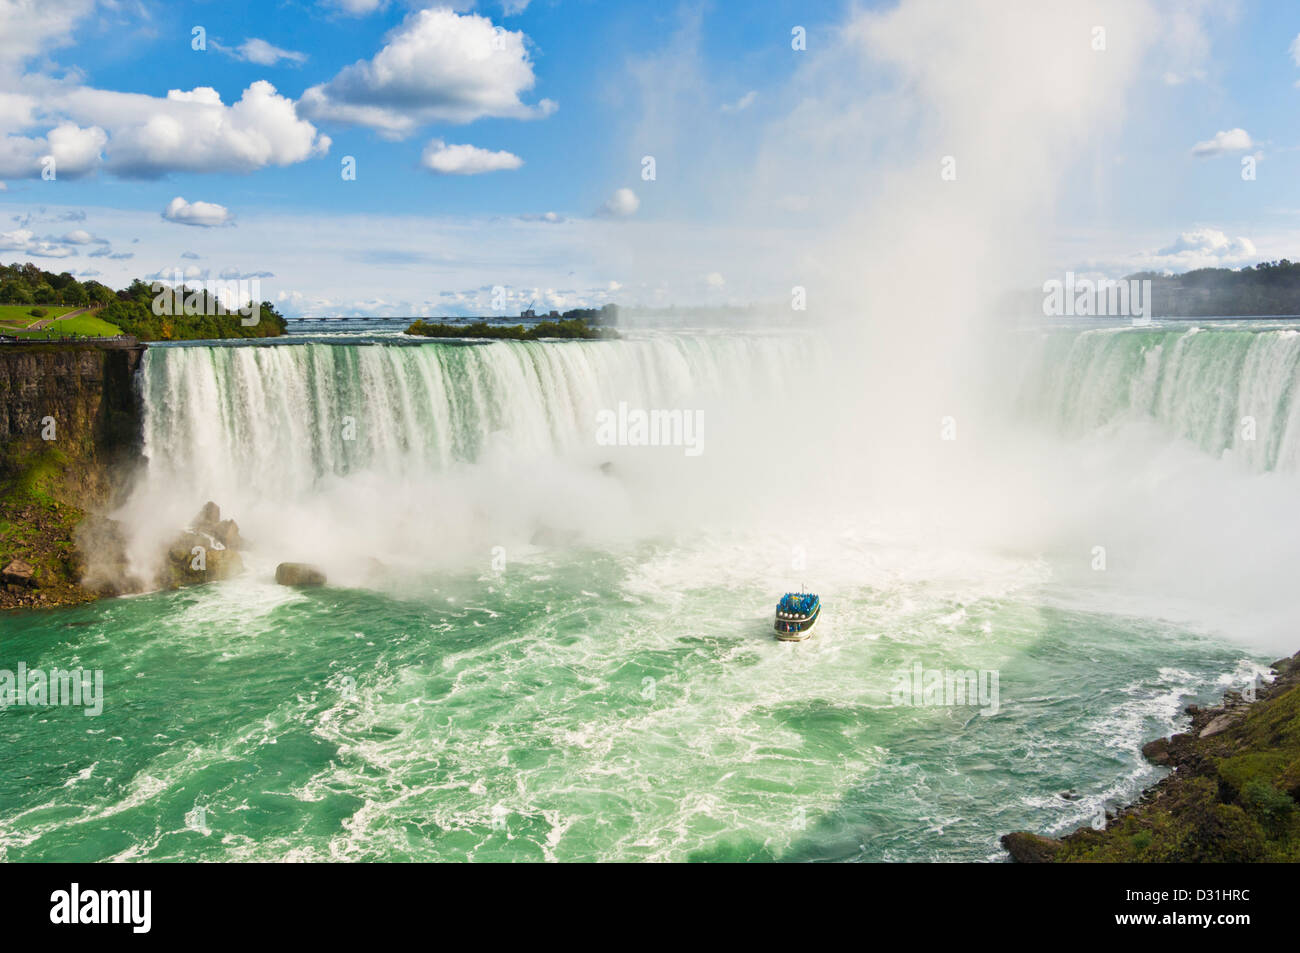 Maid of the mist boat cruise with tourists in blue raincoats Horseshoe falls on the Niagara river Ontario Canada - Stock Image